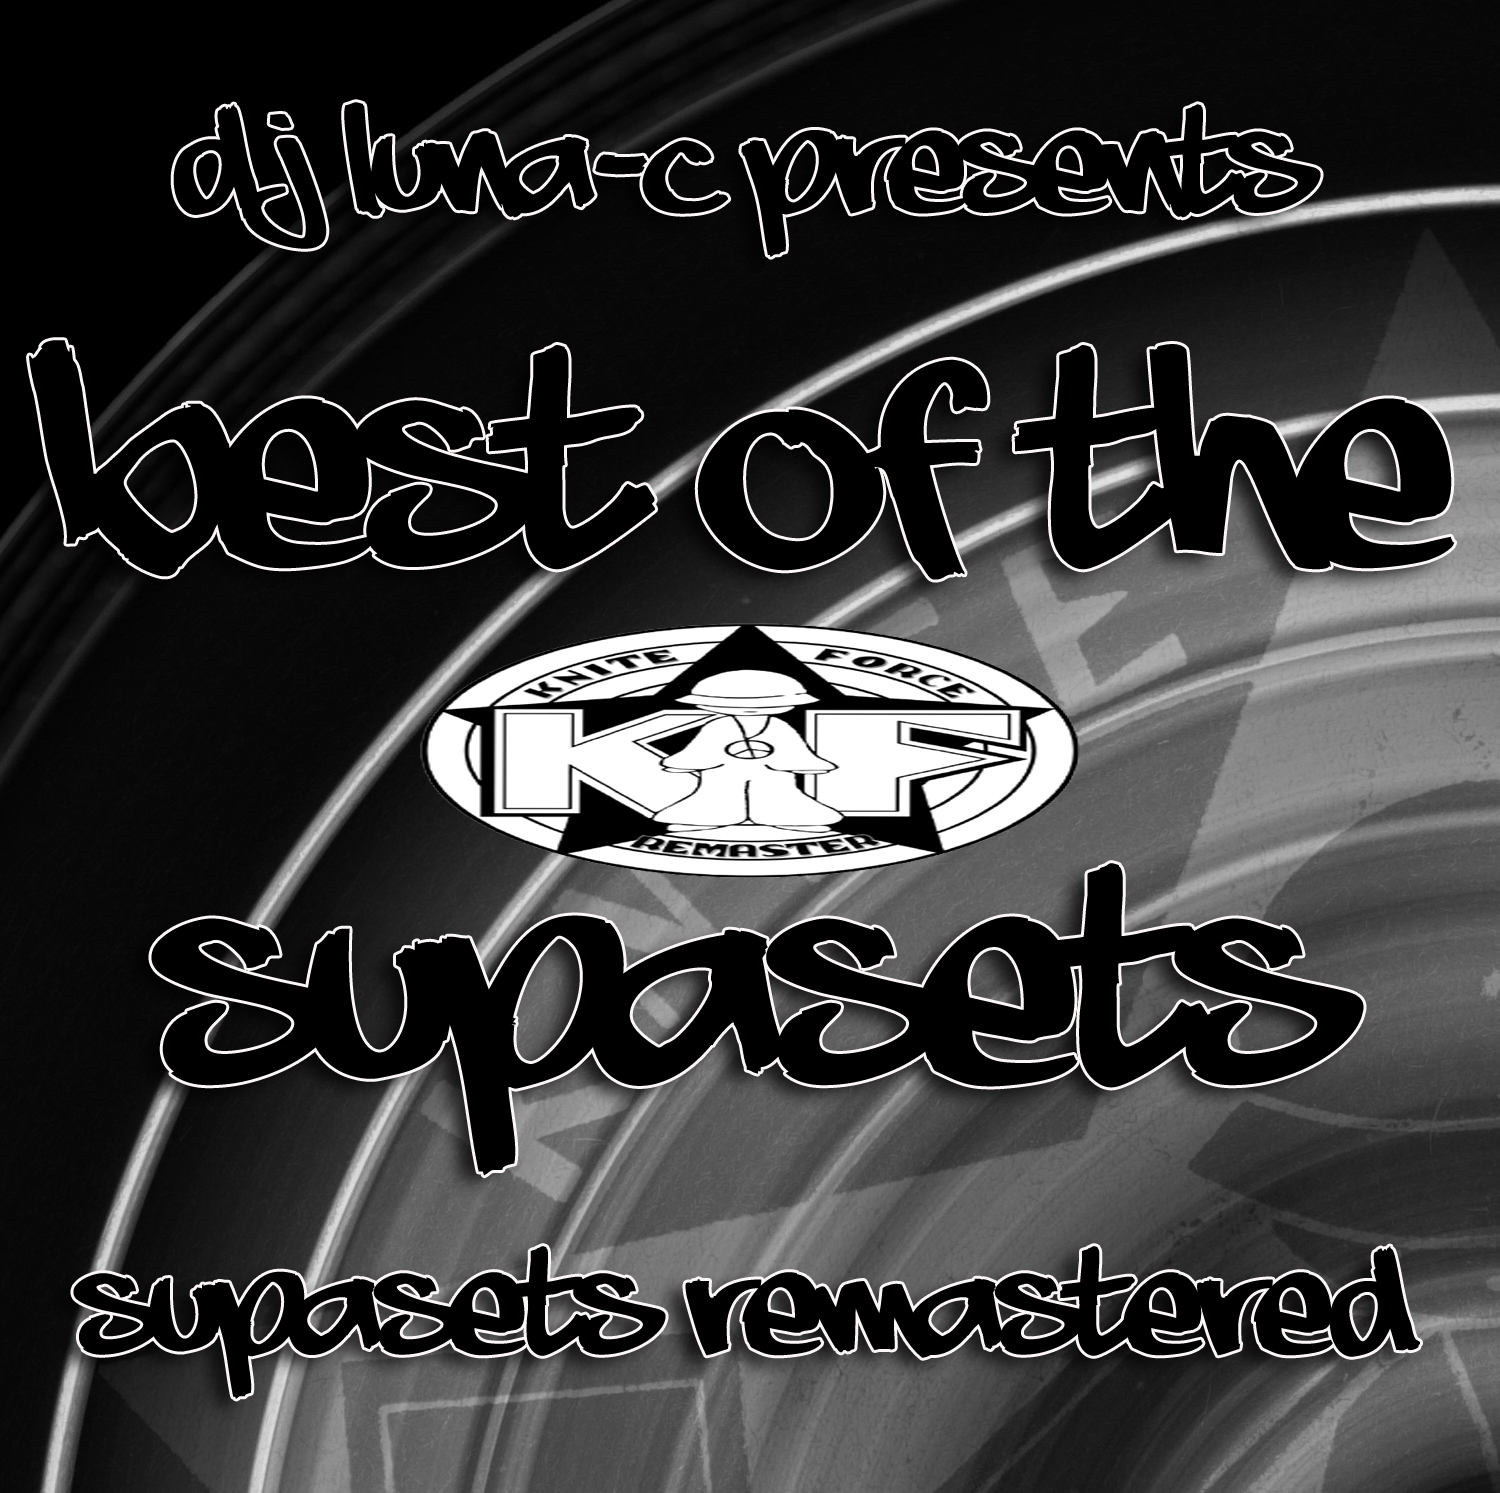 [KFSS00] Luna-C - The Best Of The Supasets (Digital Only)